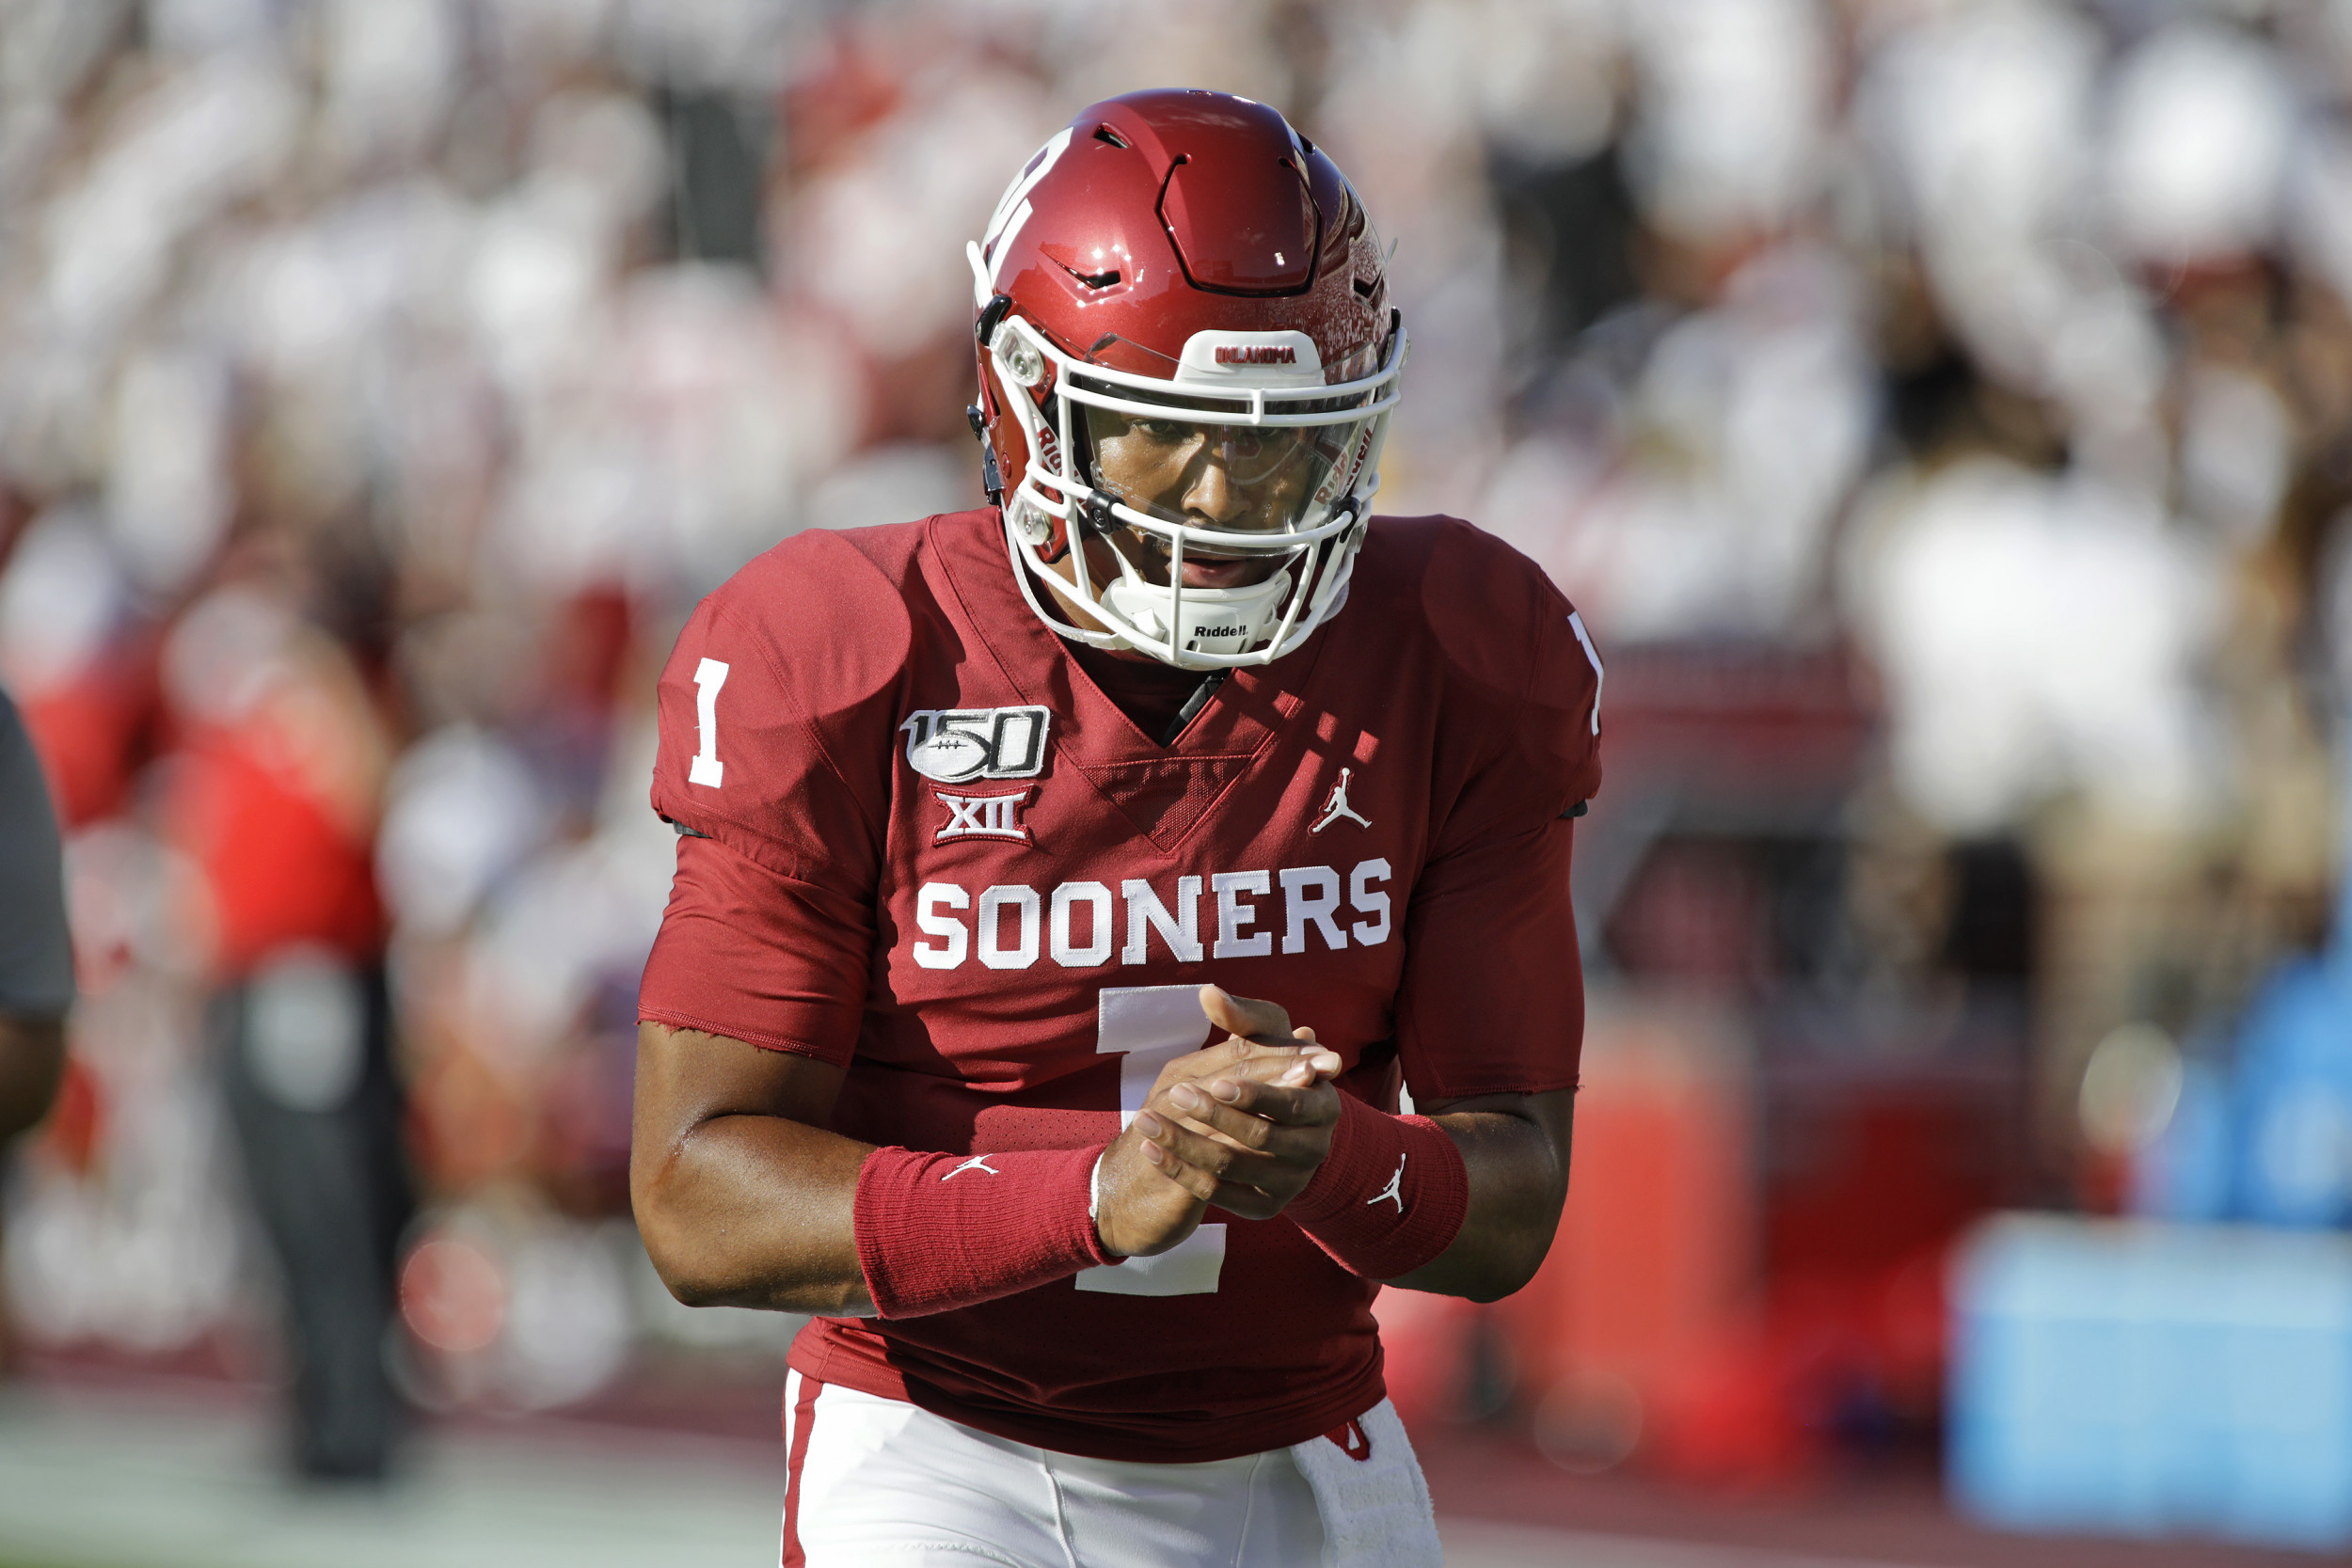 College Football Where To Watch South Dakota Vs Oklahoma TV Channel Live Stream